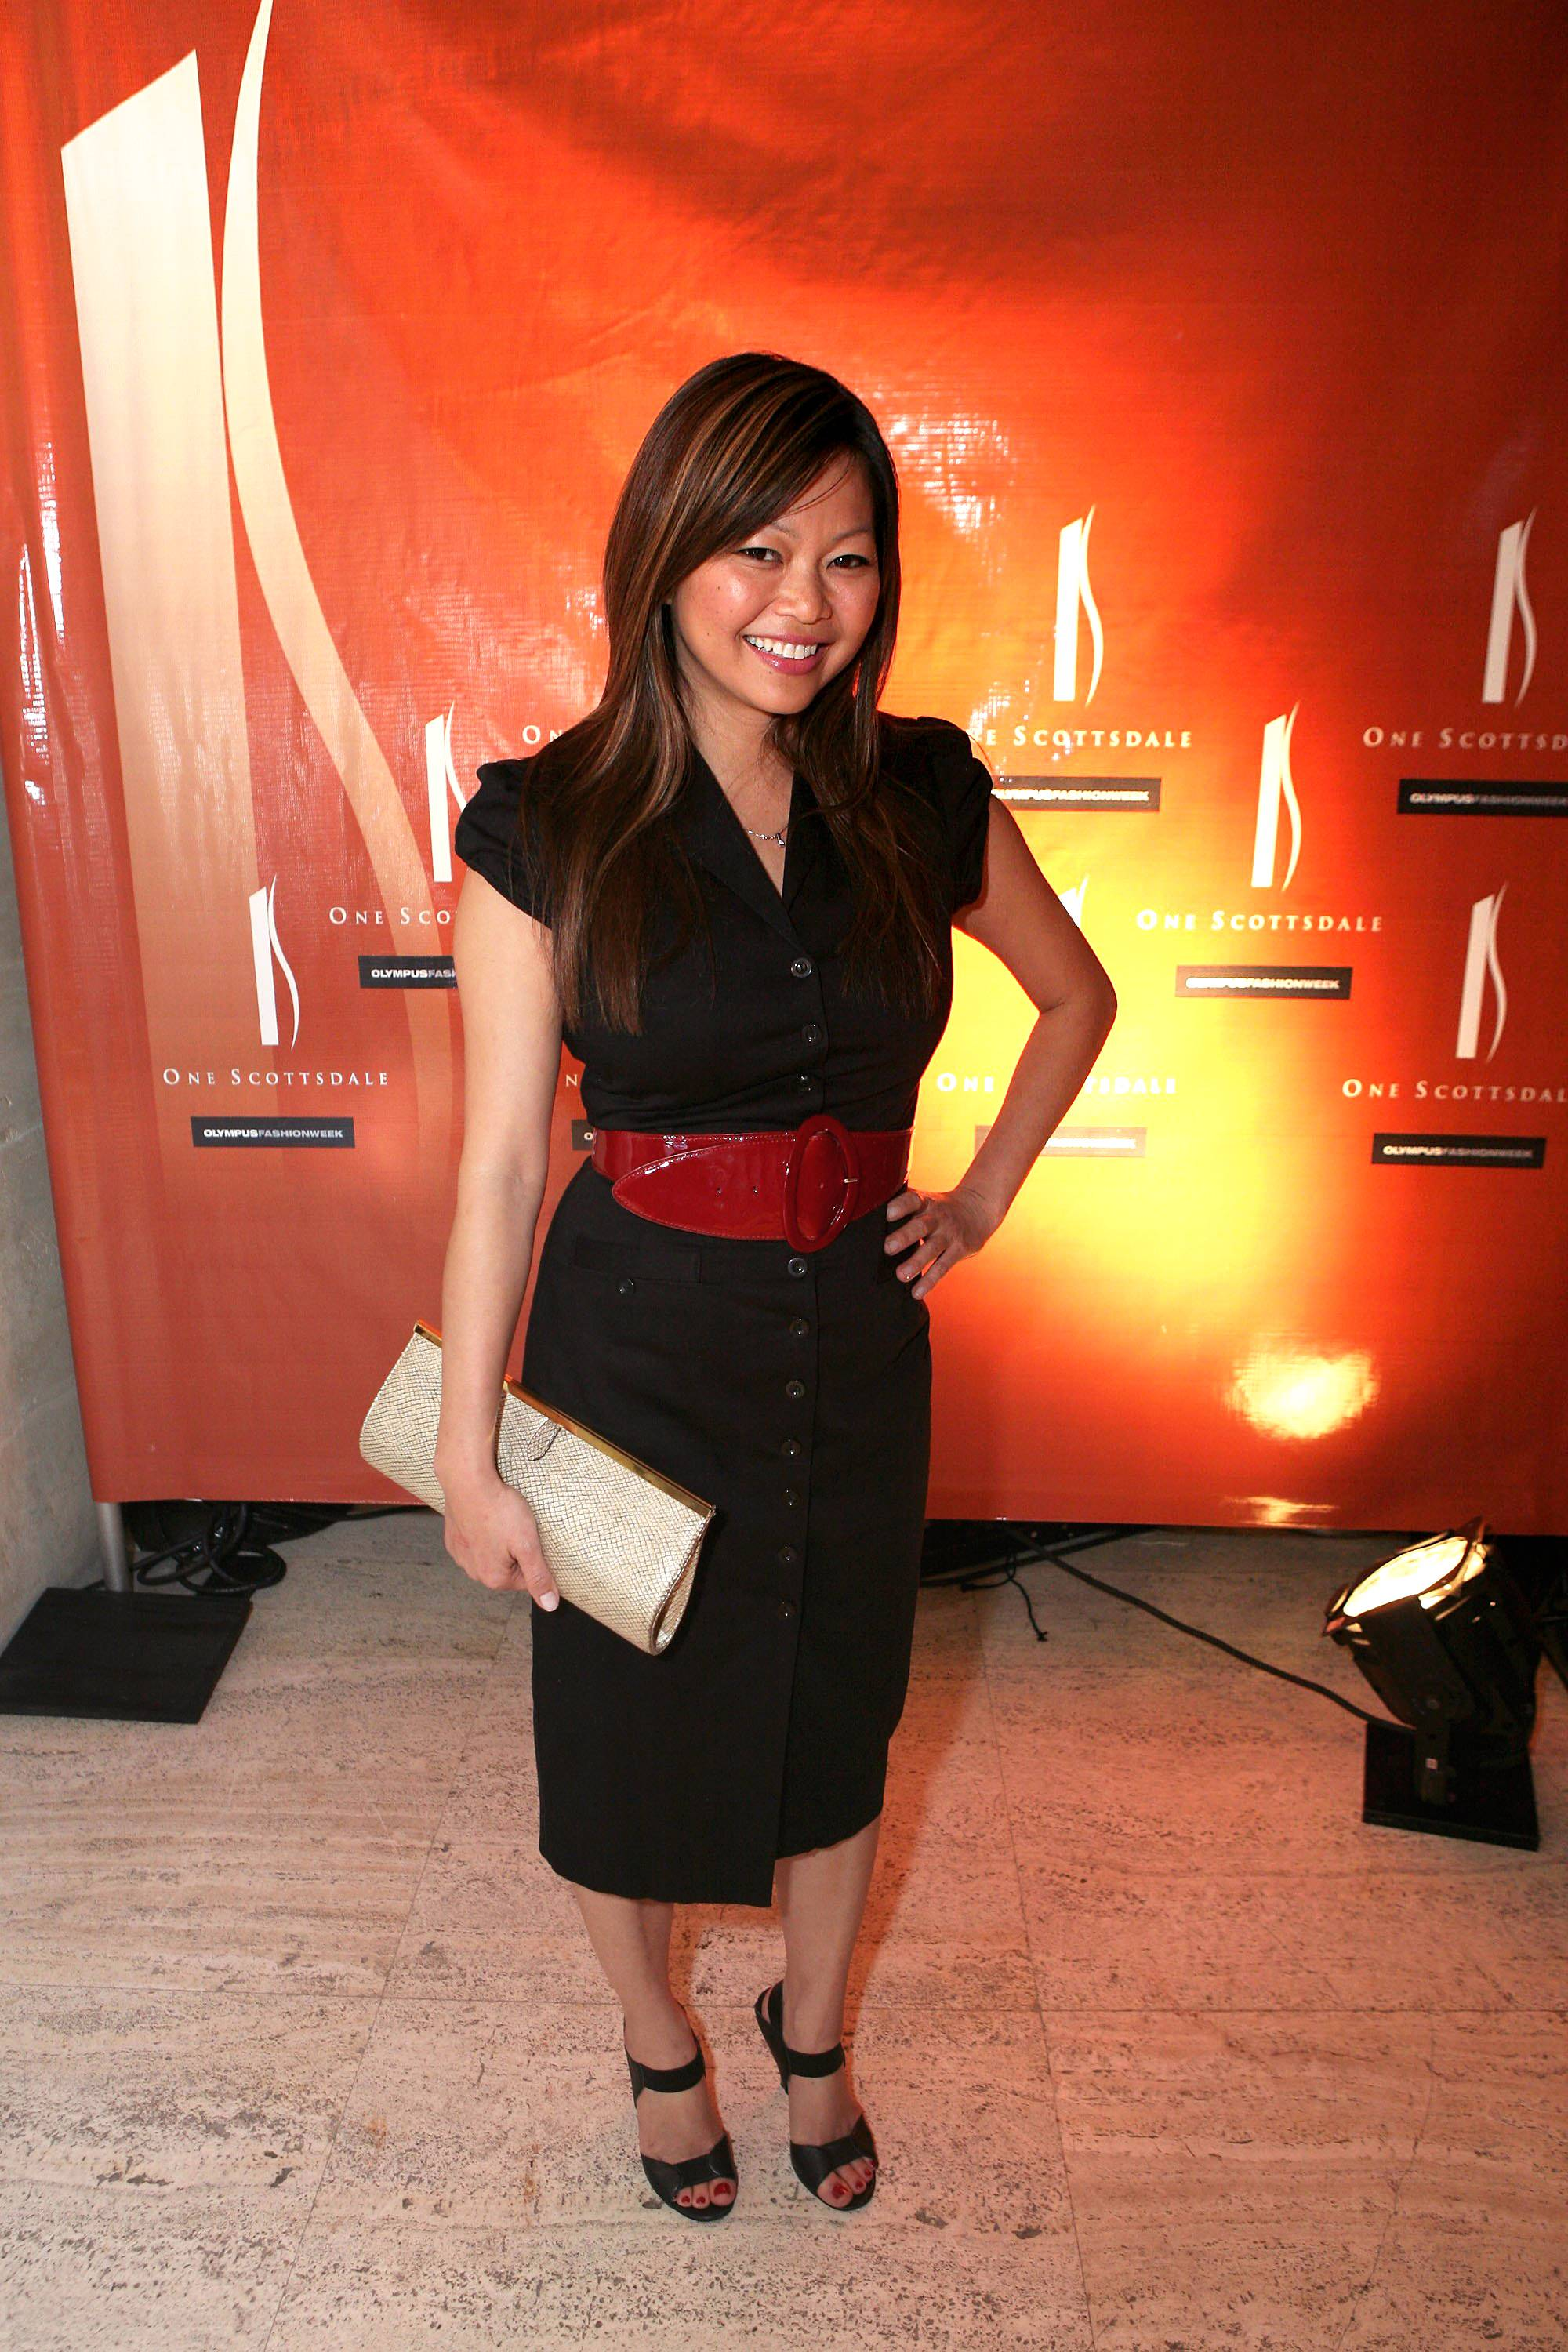 Chloe Dao - Educated at NY's Fashion Institute of Technology, Chloe Dao gained national recognition as the second winner of Project Runway. Included in her victory prize was a mentorship with Banana Republic and $100,000 to start her own company. She has since launched the women's line, Dao Chloe Dao.(Photo: Chad Buchanan/Getty Images For One Scottsdale)